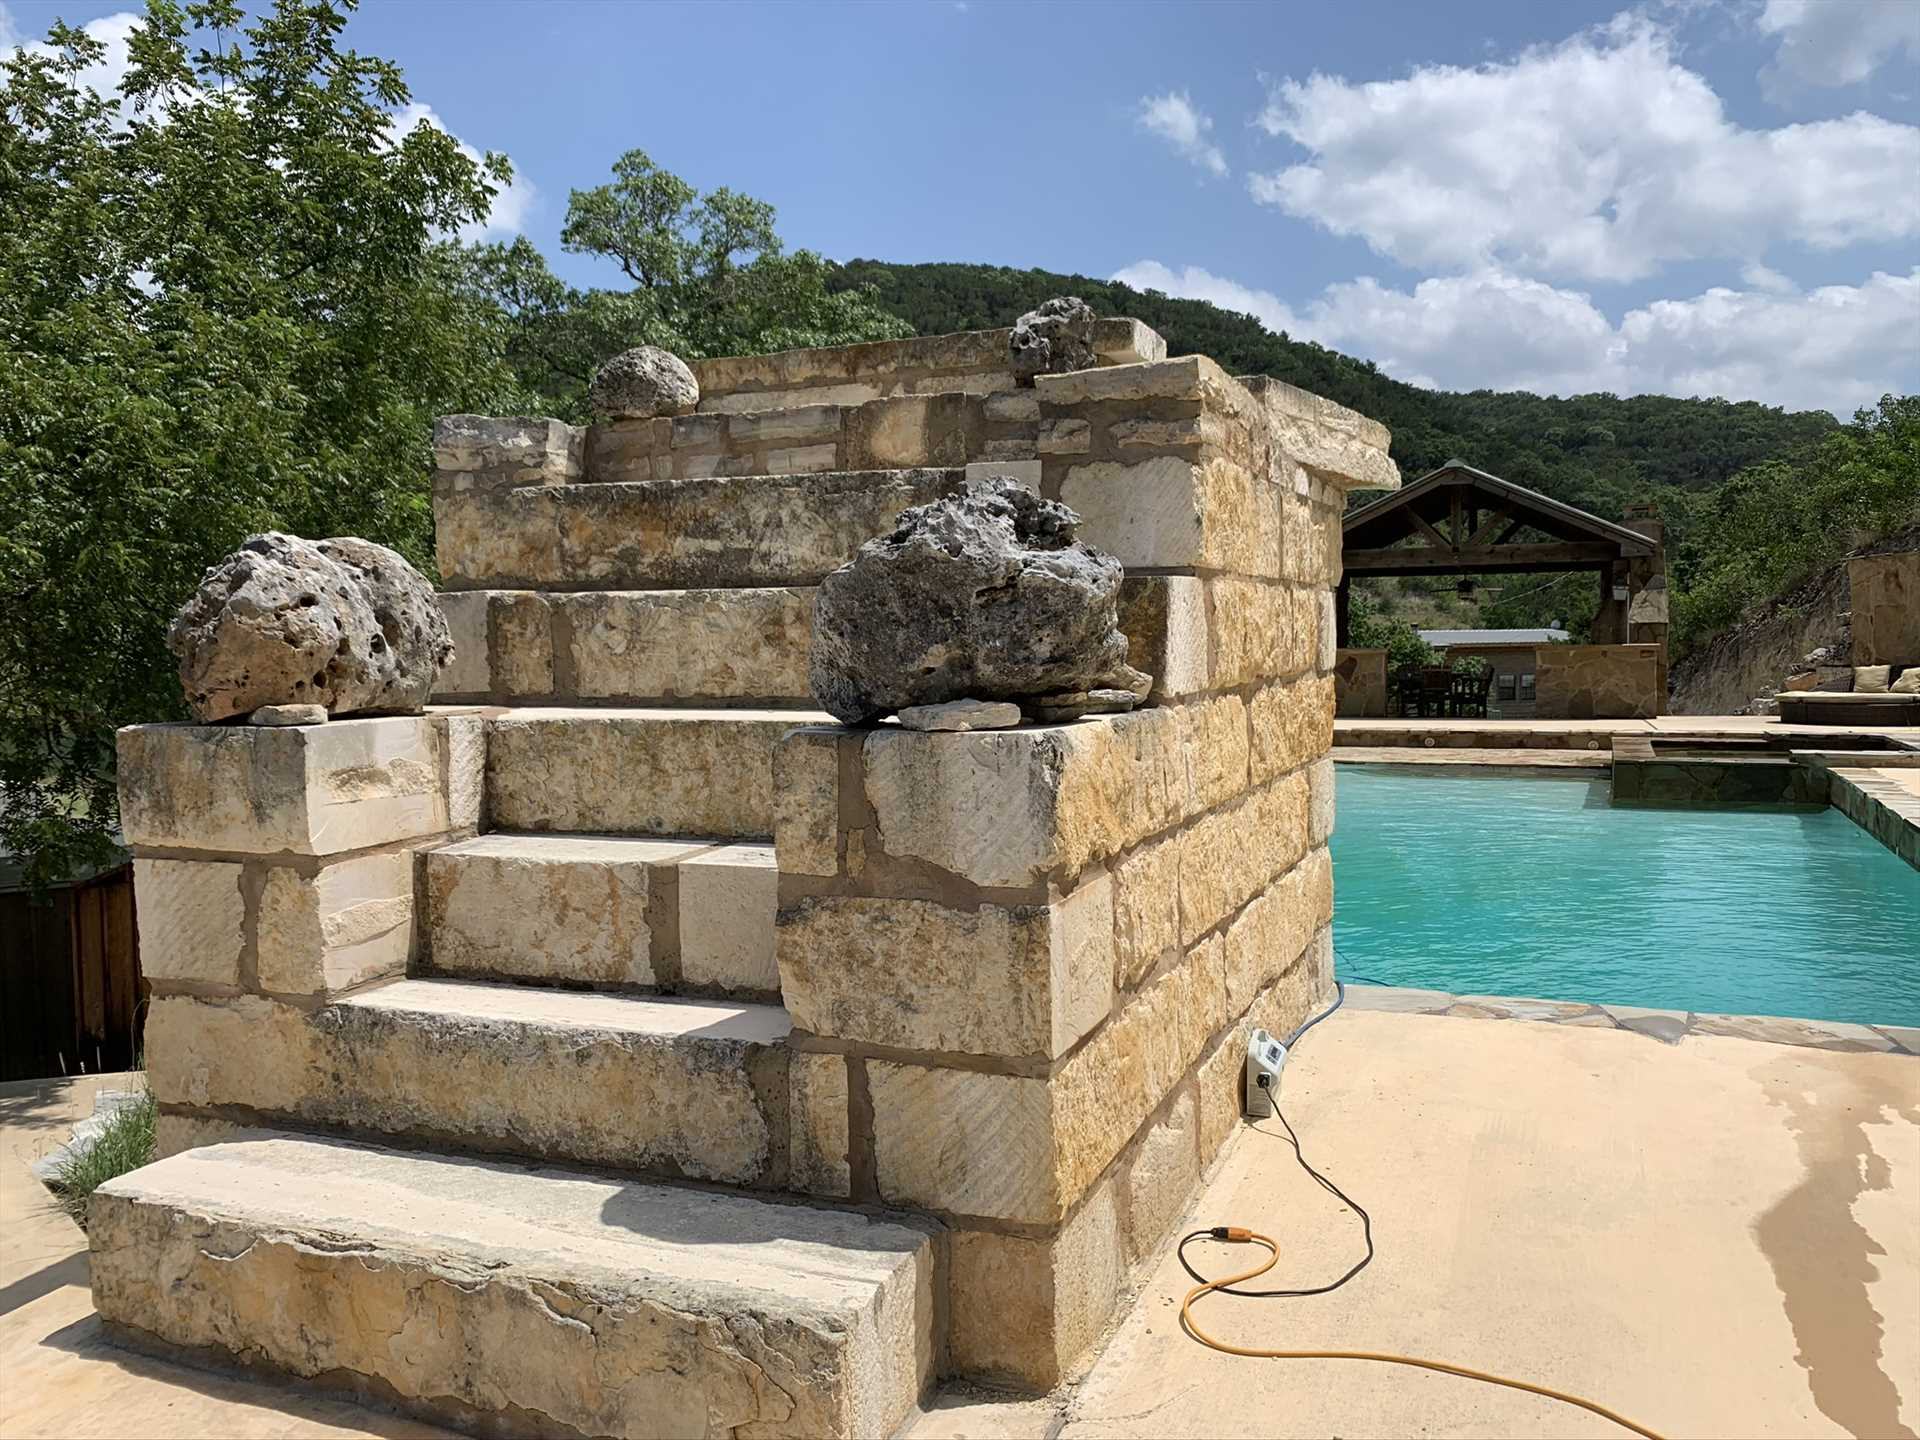 Have you every jumped into a pool from a stone diving board? This is your chance!